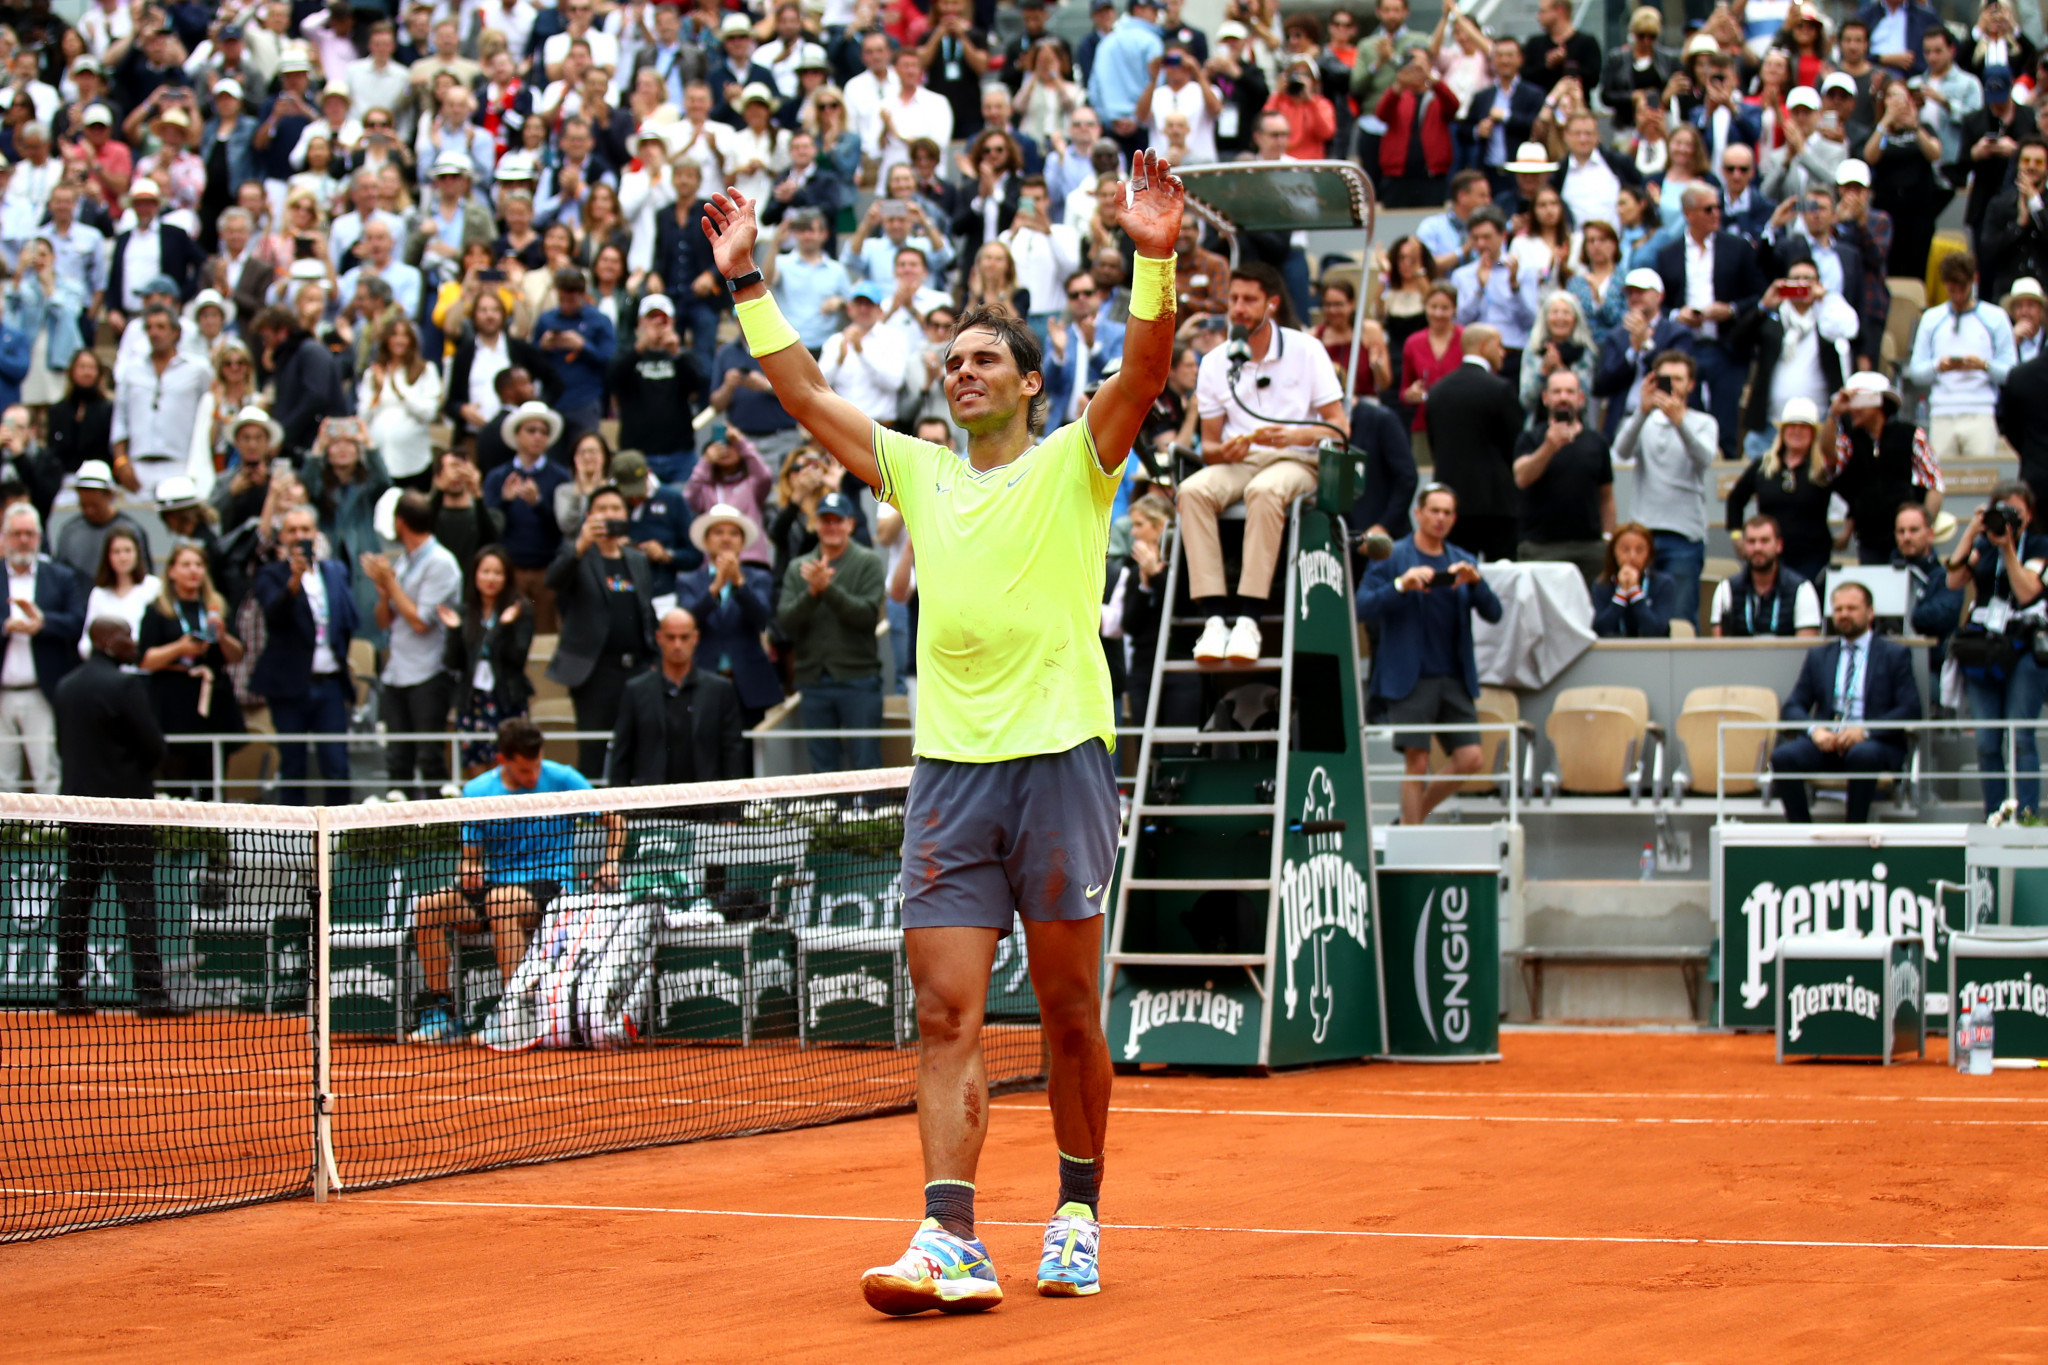 Nadal brings his A-game to wrap up 12th Roland Garros crown